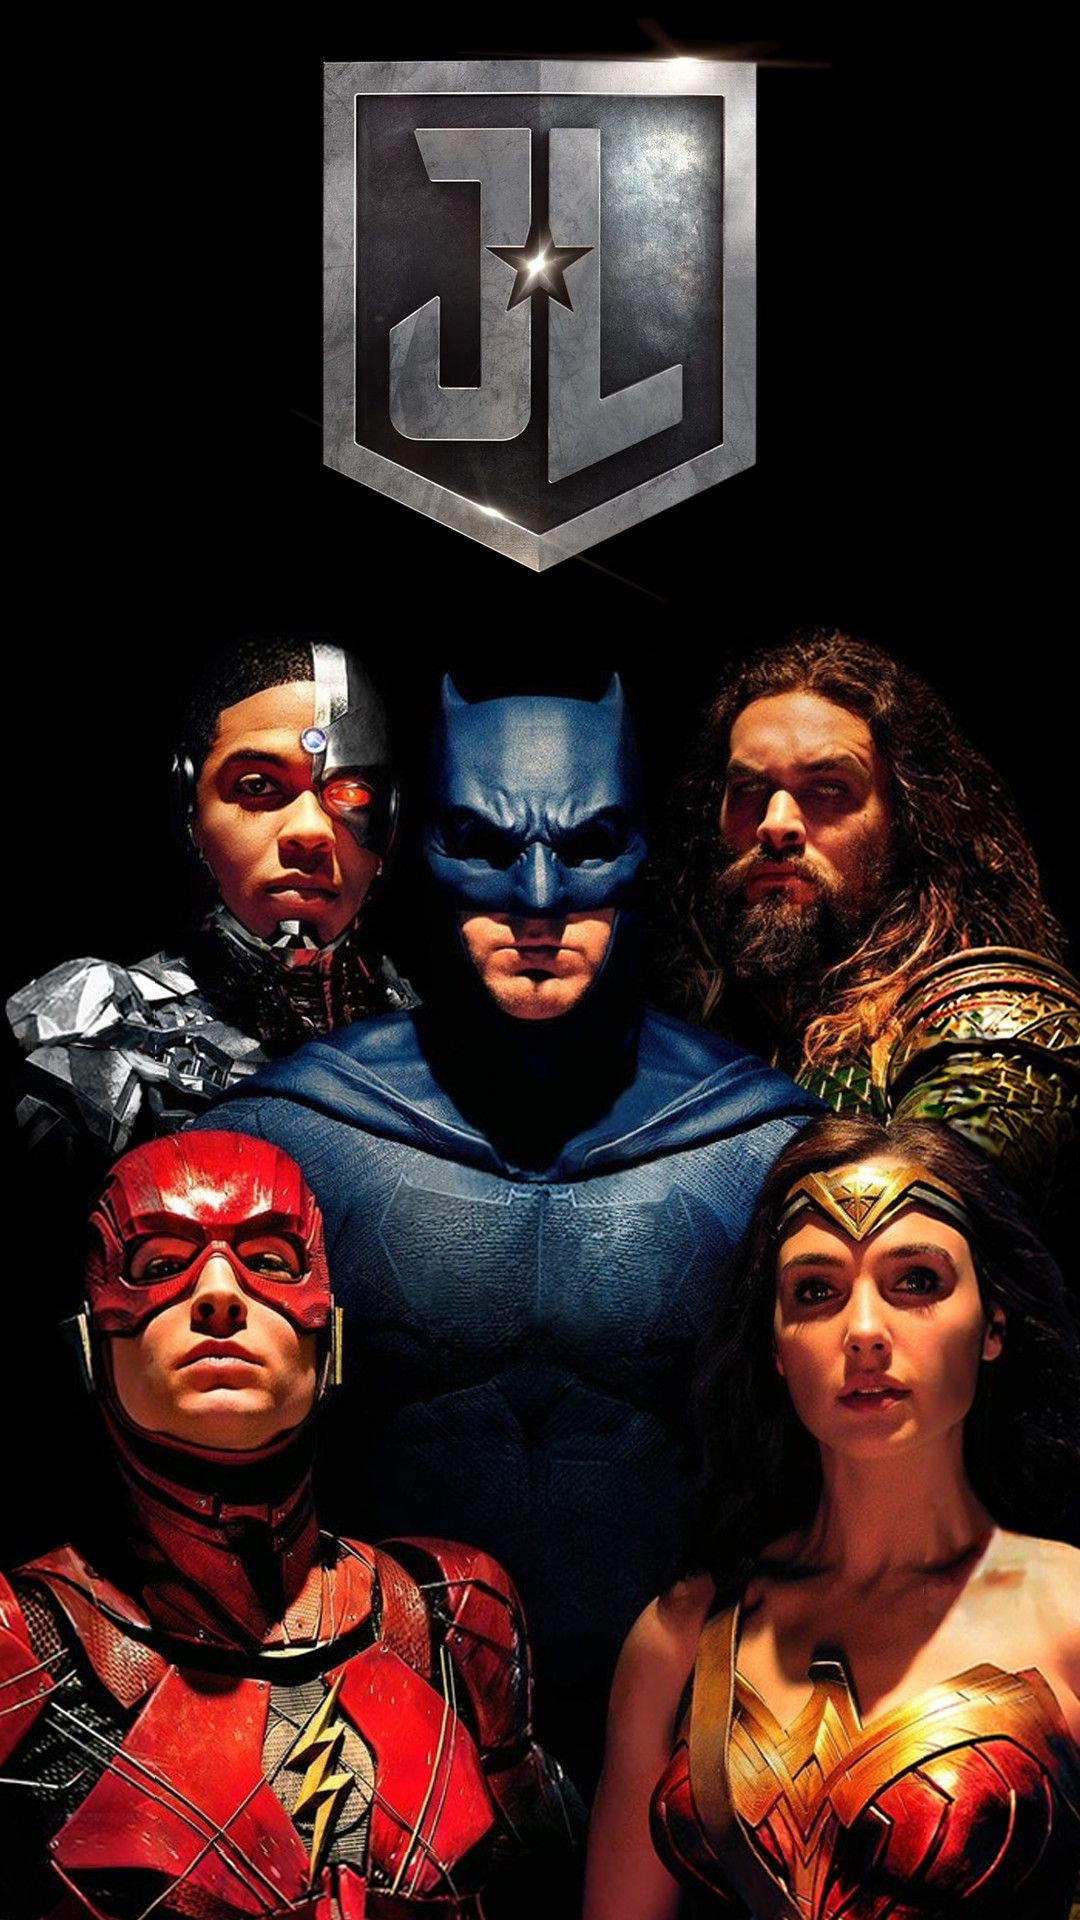 Justice League Flash Wallpaper Android Download in 2020